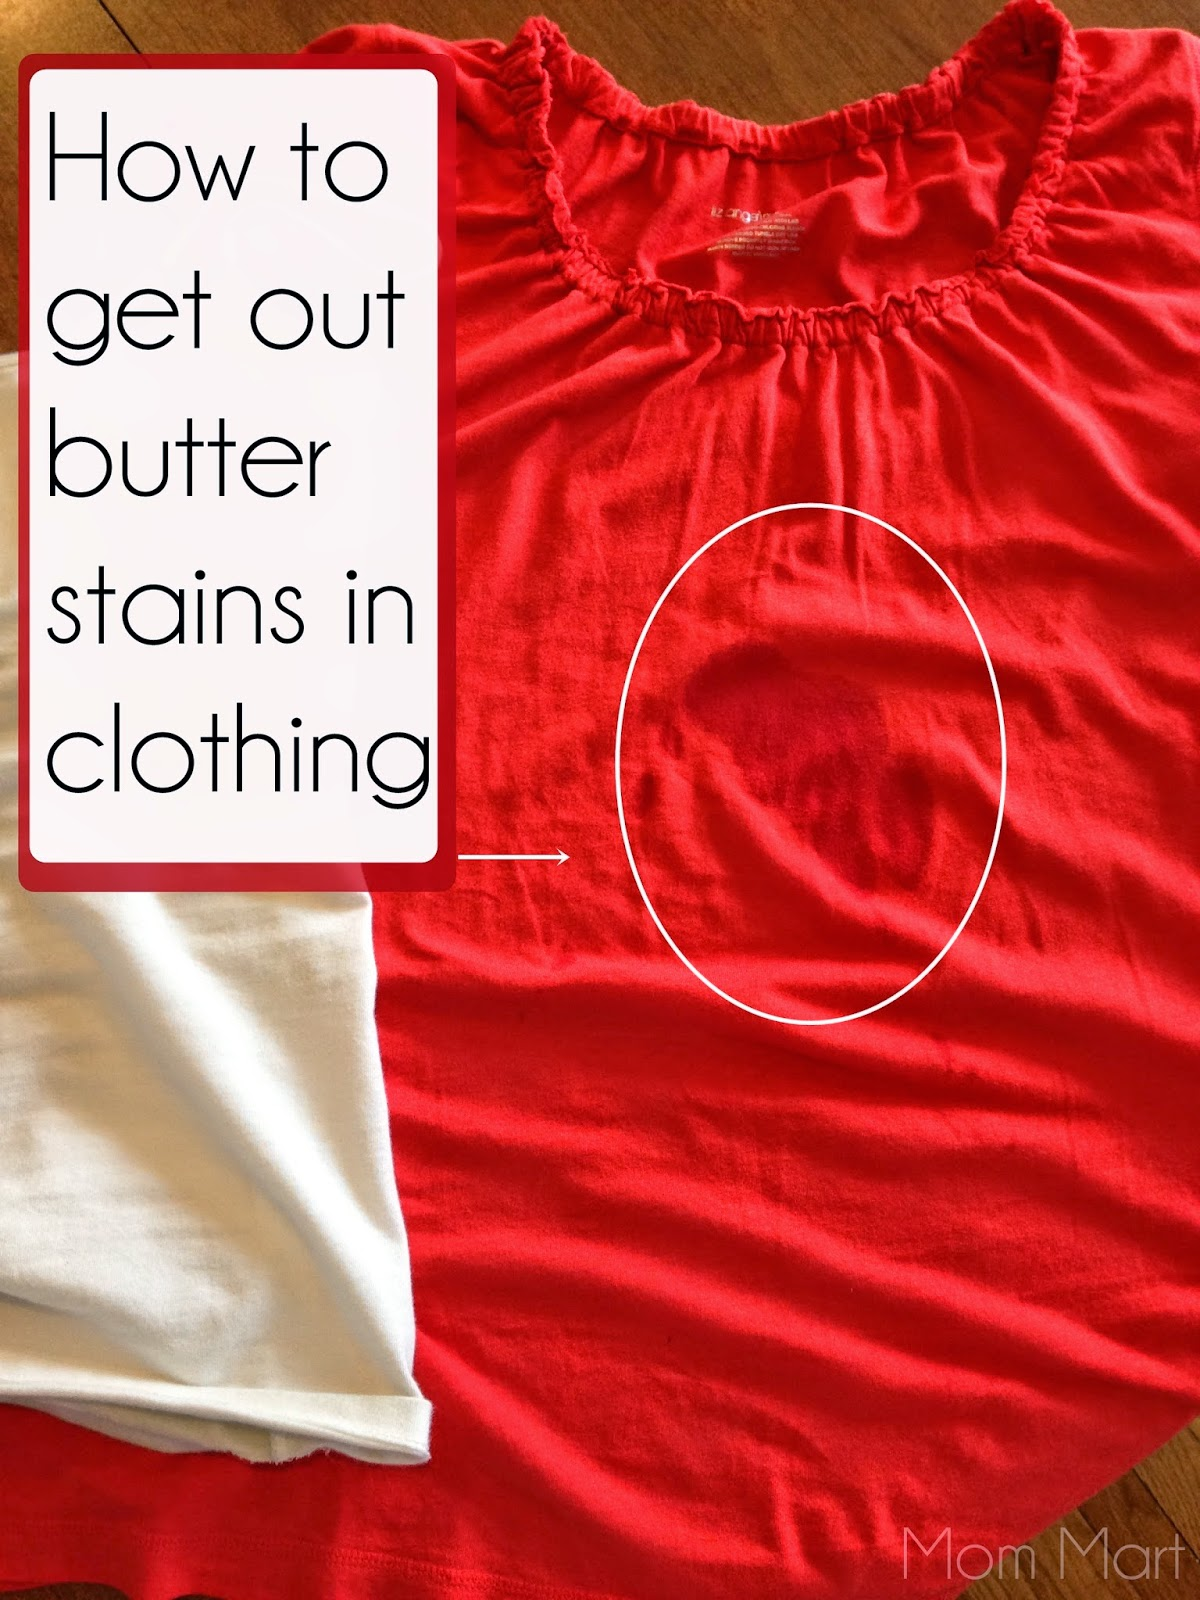 How to remove butter stains from clothing #DIY #TipsAndTricks #Solutions